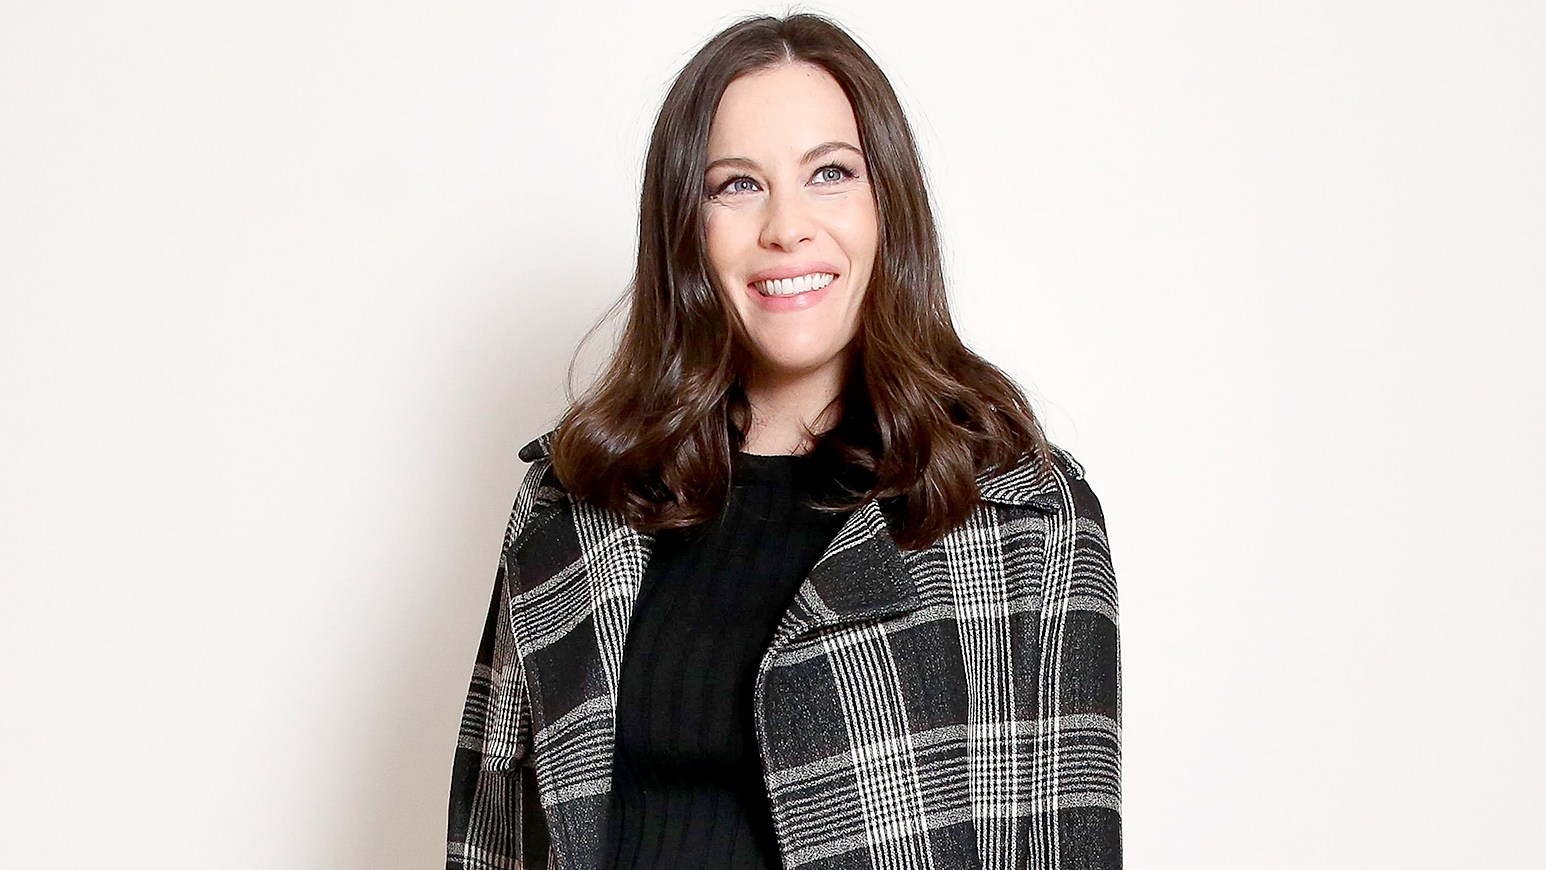 Liv Tyler attends the Proenza Schouler fashion show during Fall 2016 New York Fashion Week.